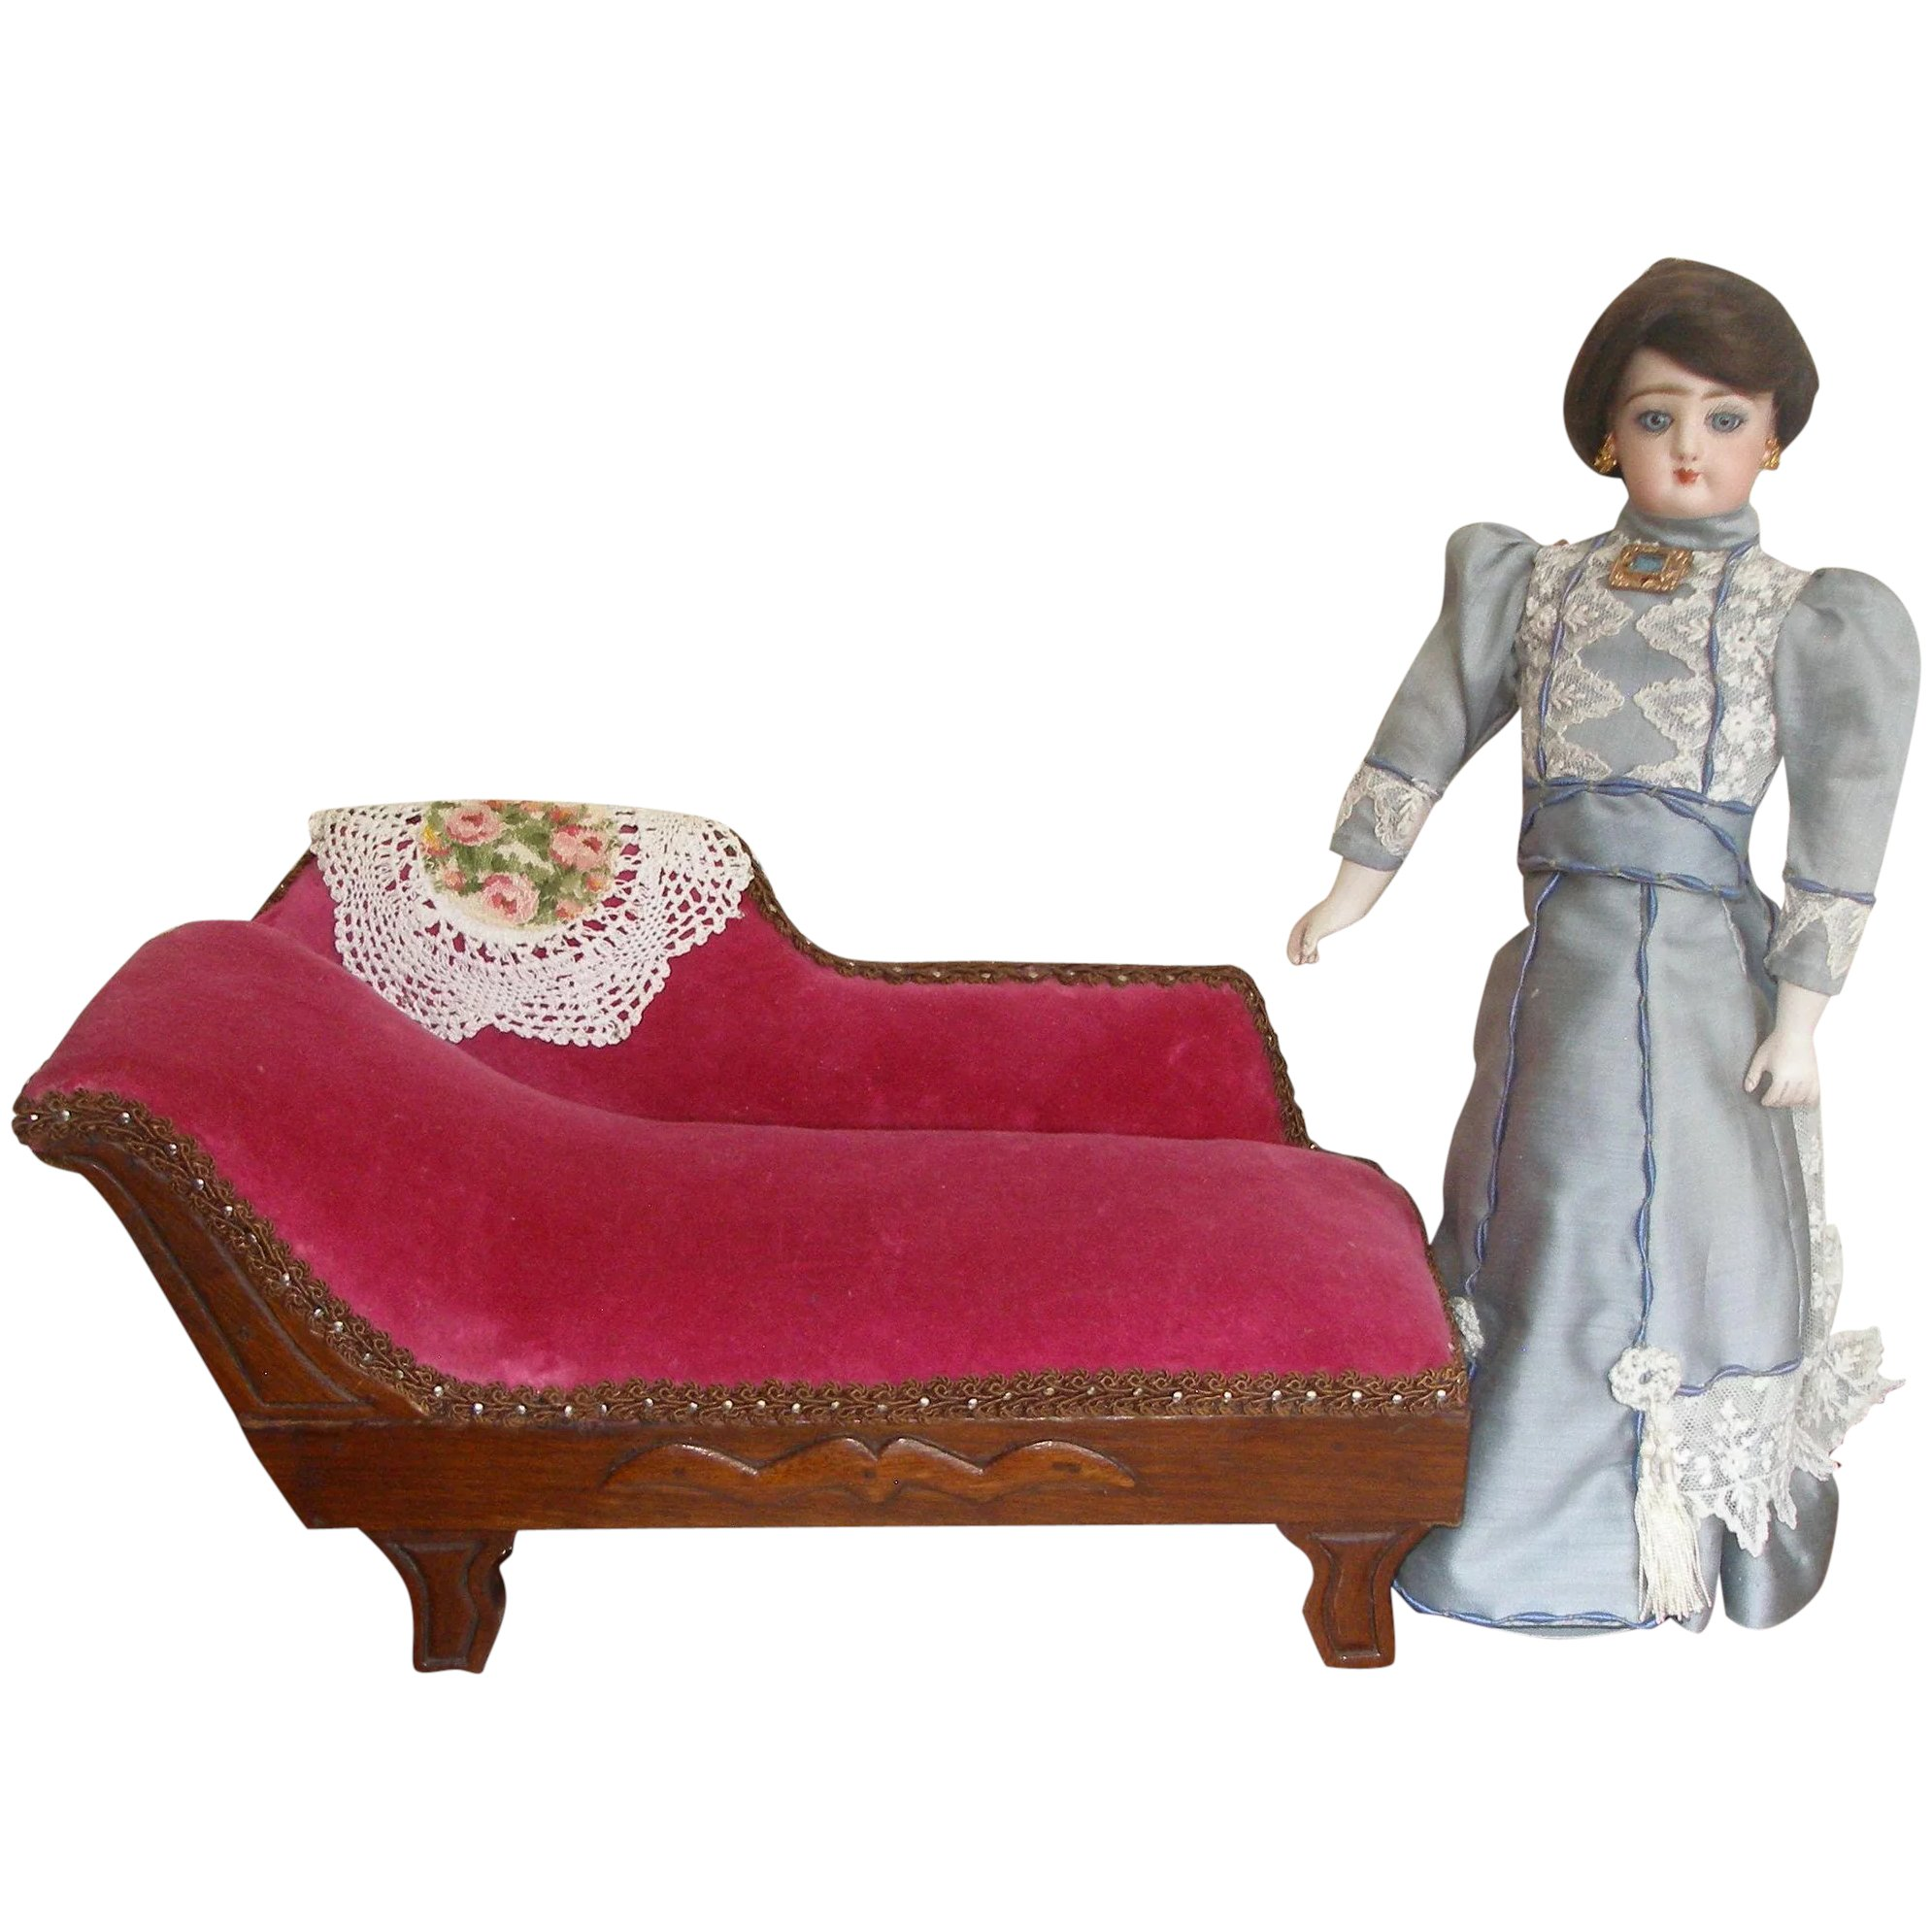 Awe Inspiring Fainting Couch For Smaller 11 14 Doll Unemploymentrelief Wooden Chair Designs For Living Room Unemploymentrelieforg